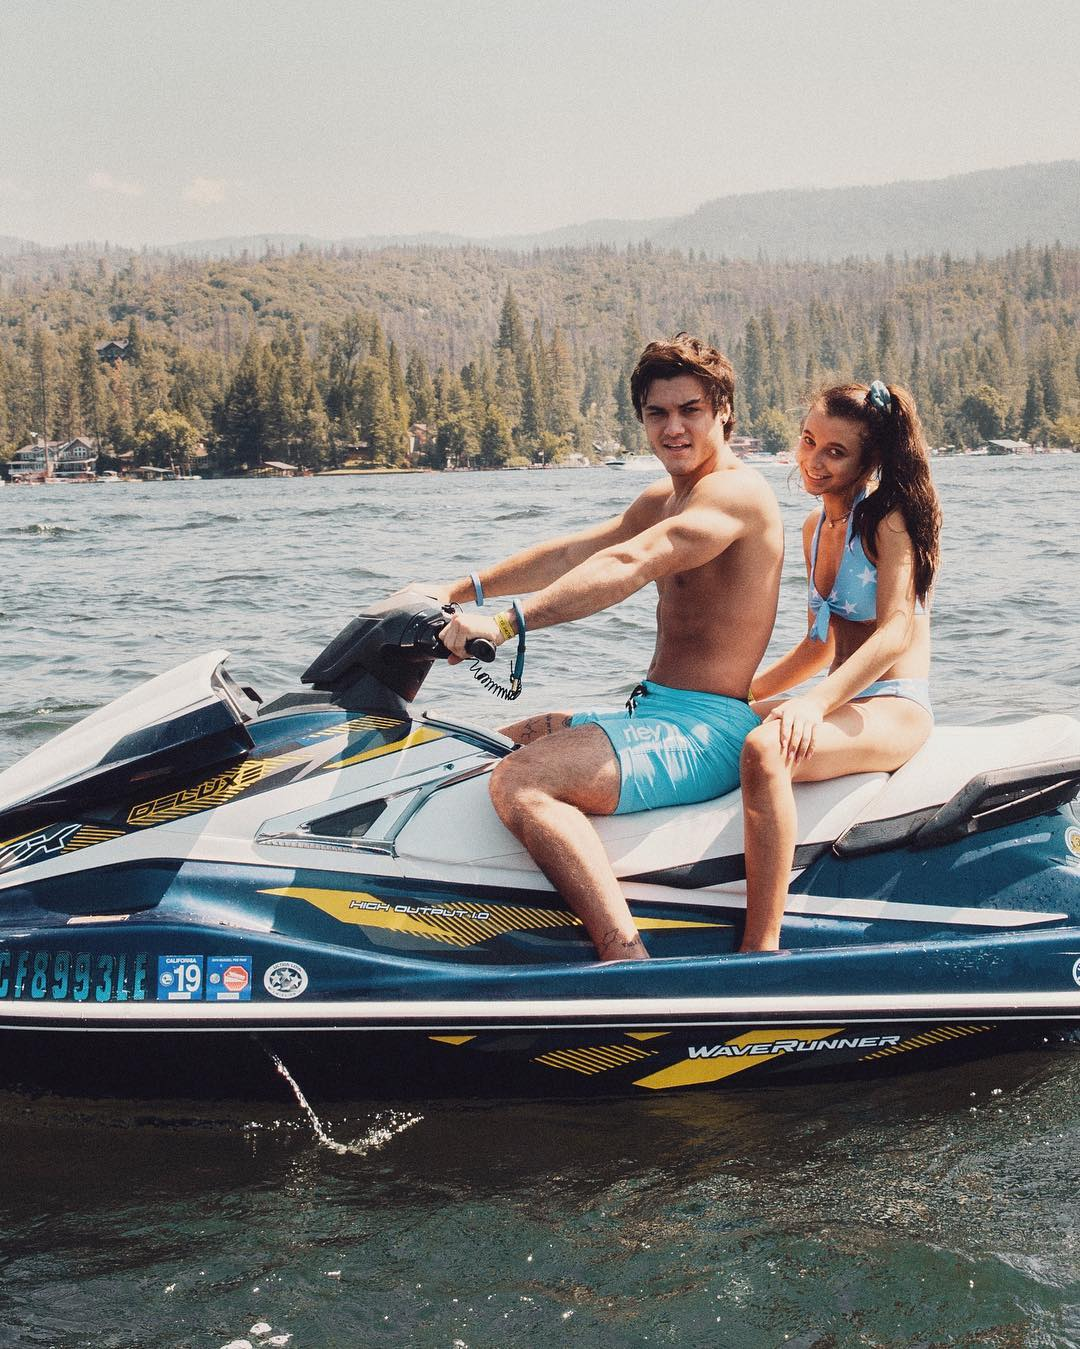 Ethan Dolan riding Waverunner with Emma Chamberlain in the back seat